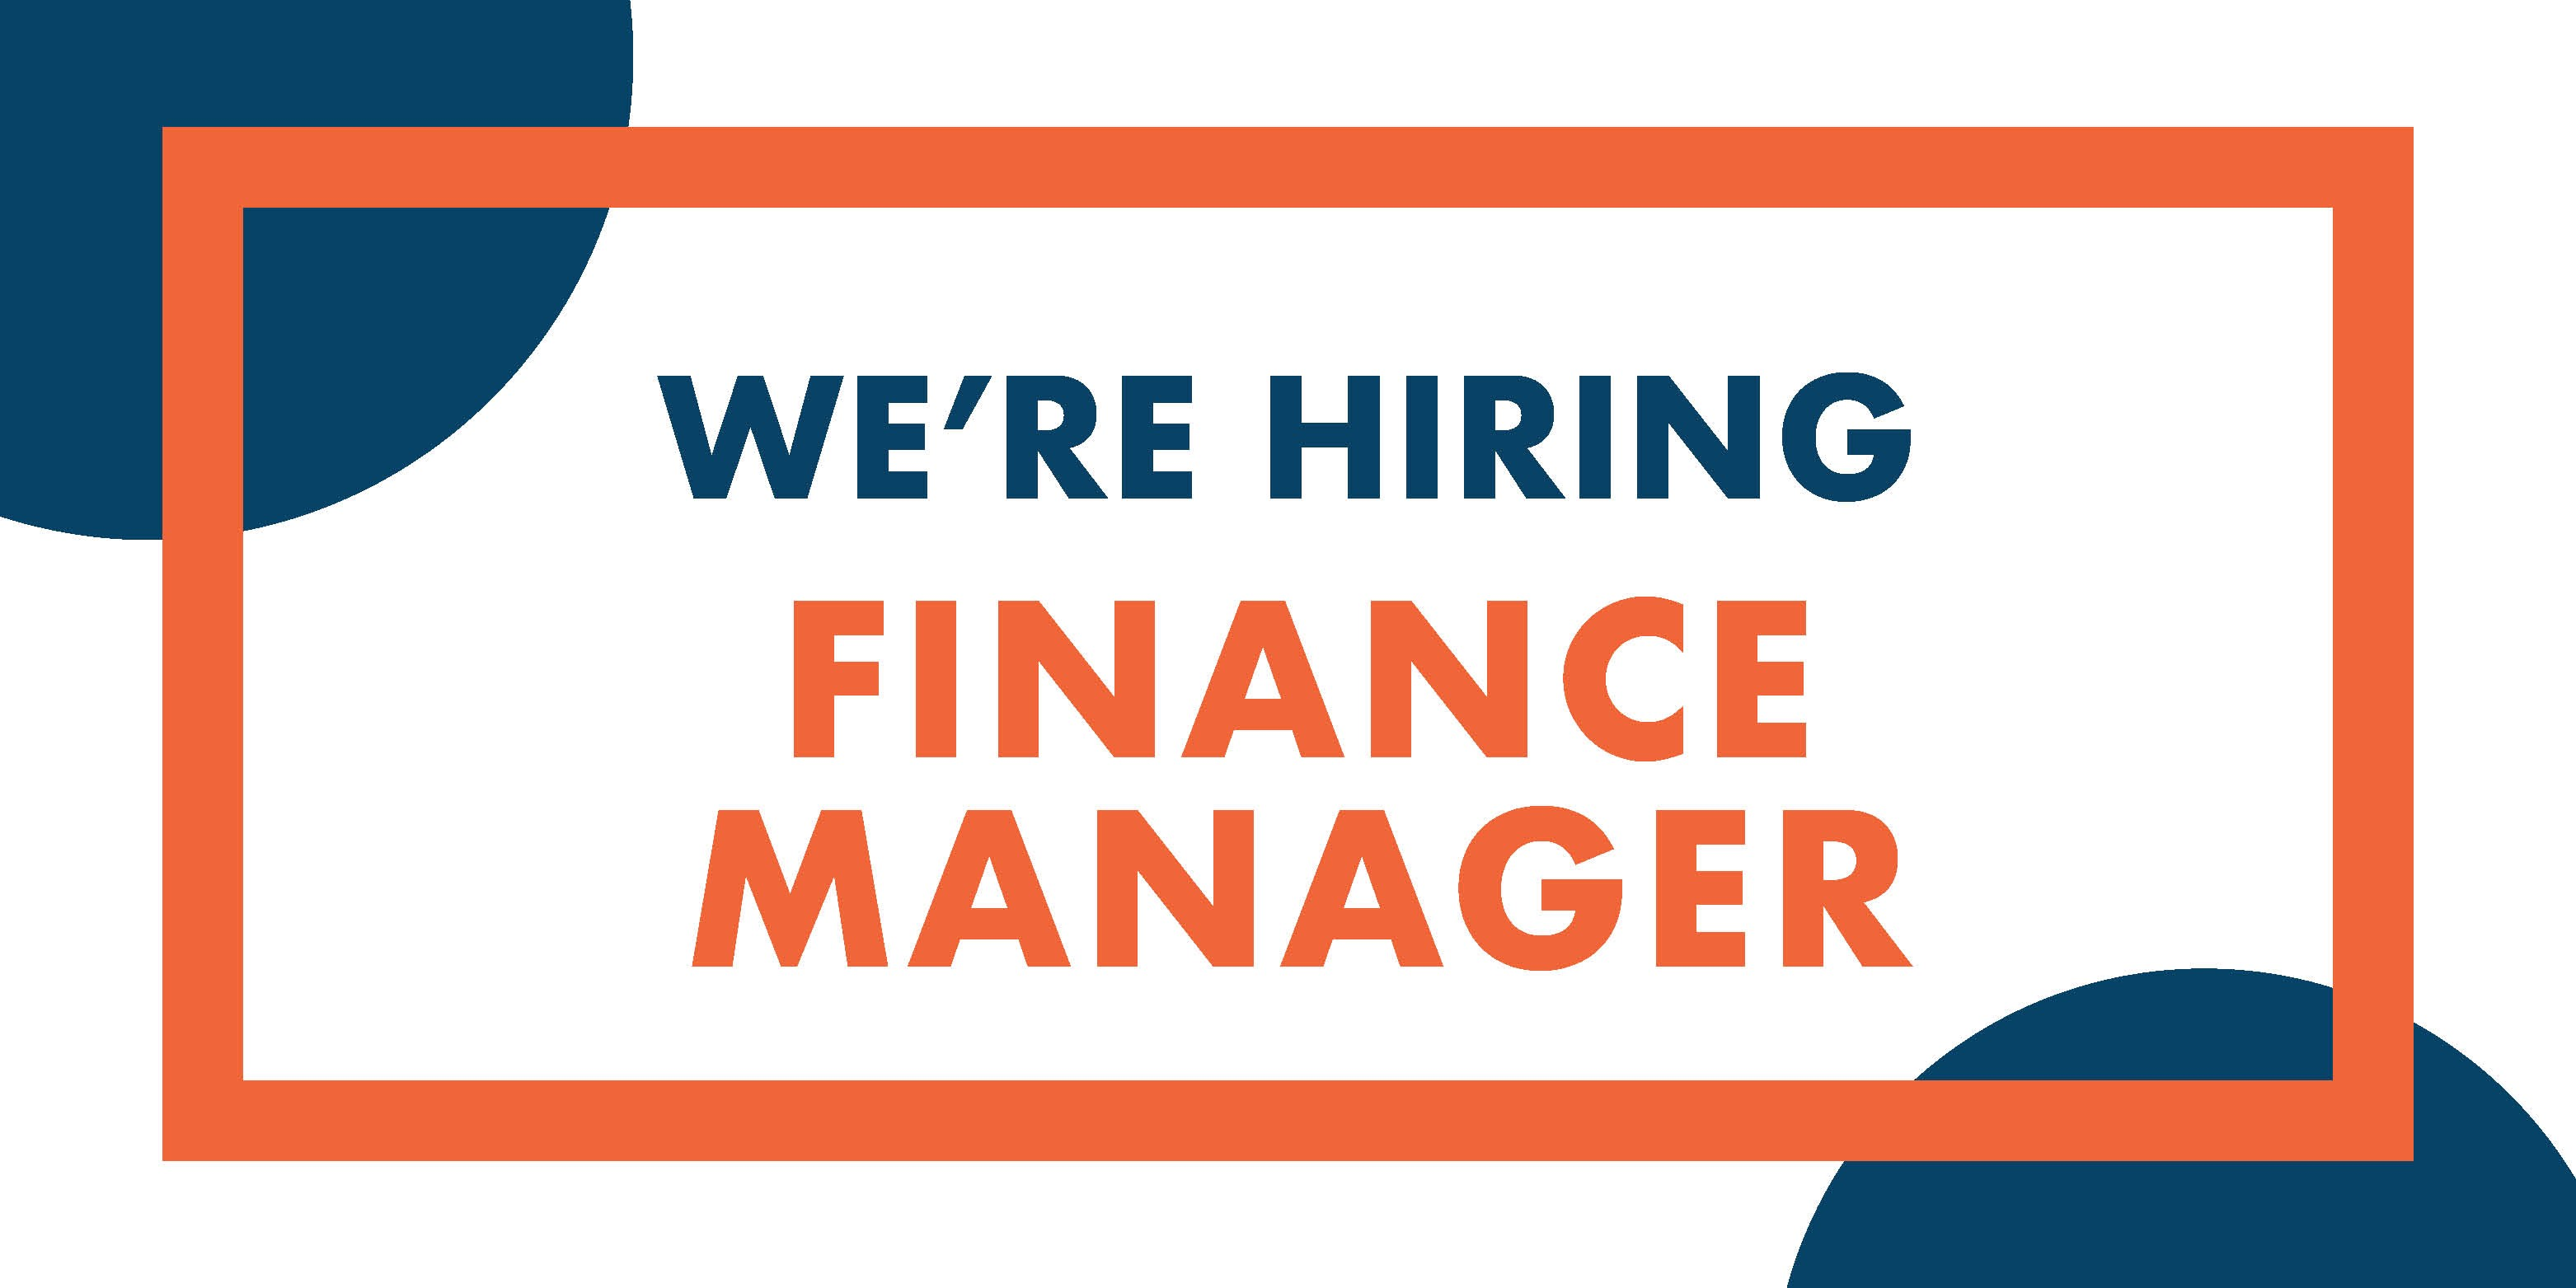 Finance Manager for Bahrain | Find all the Relevant International ...